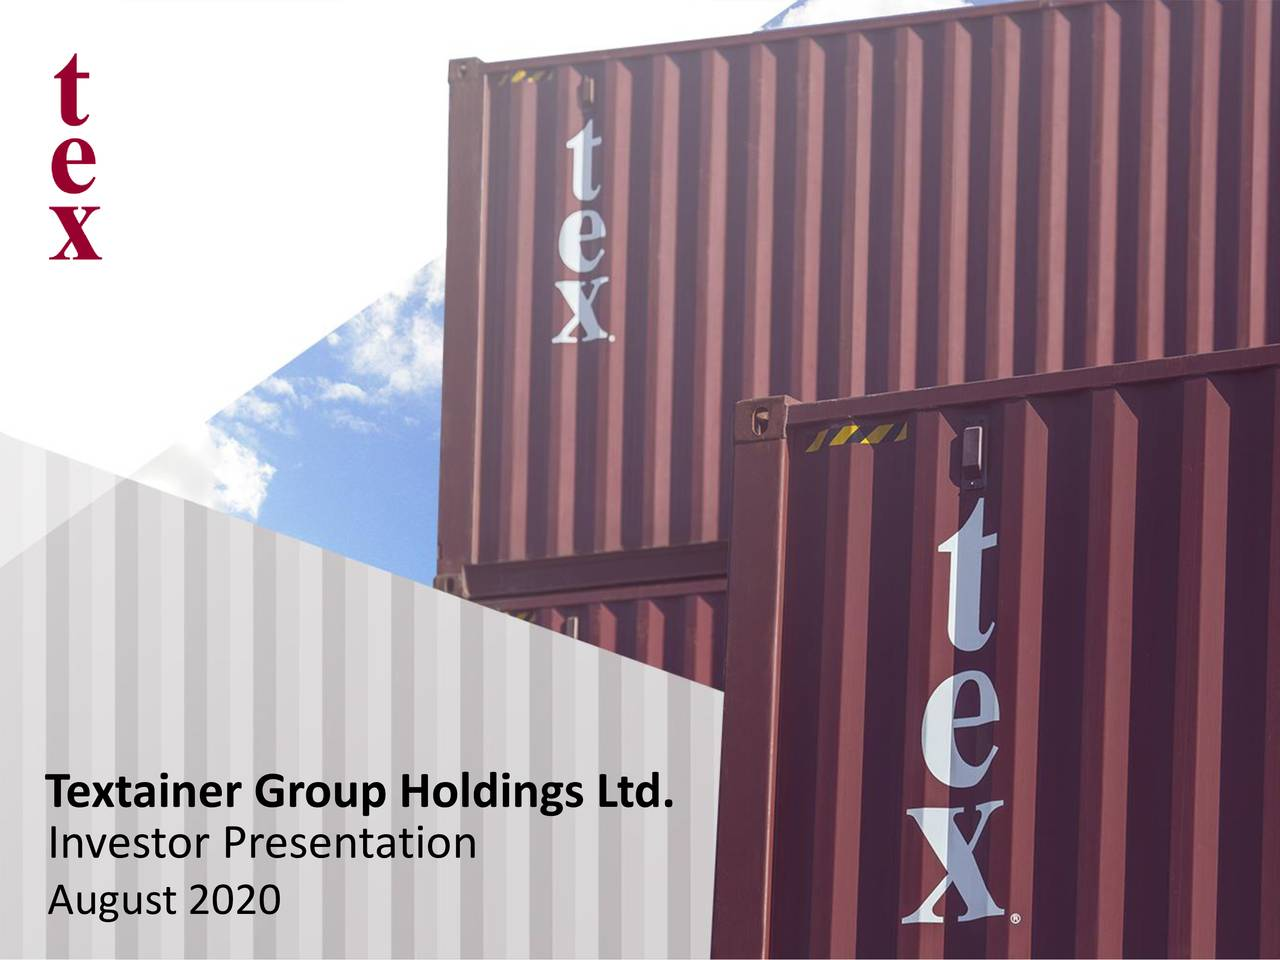 Textainer Group Holdings Limited 2020 Q2 - Results - Earnings Call Presentation (NYSE:TGH)